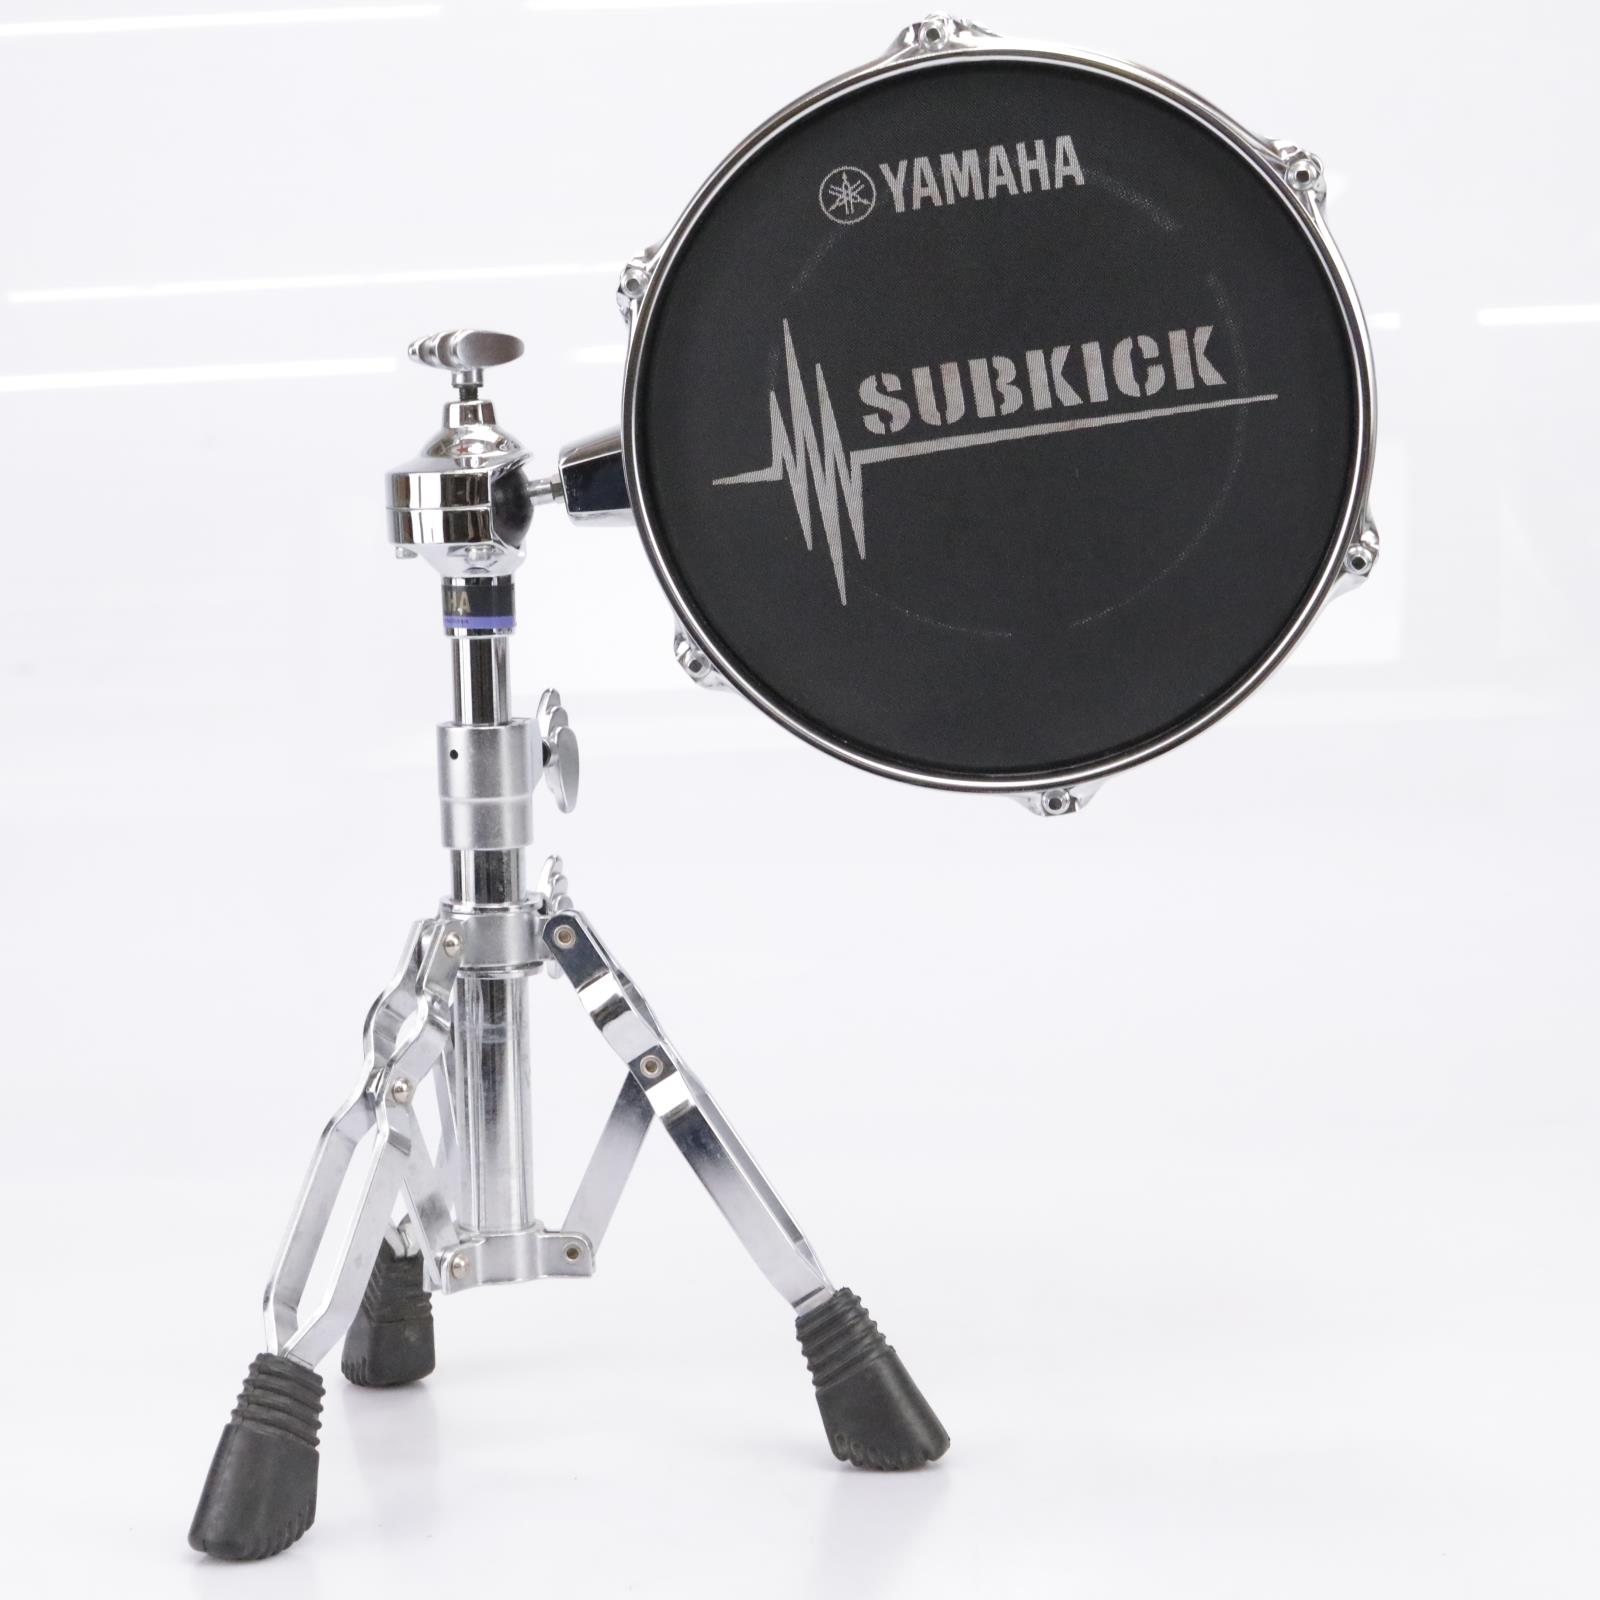 Yamaha SKRM100 Subkick Low Frequency Microphone w/ Bag & Stand #43520